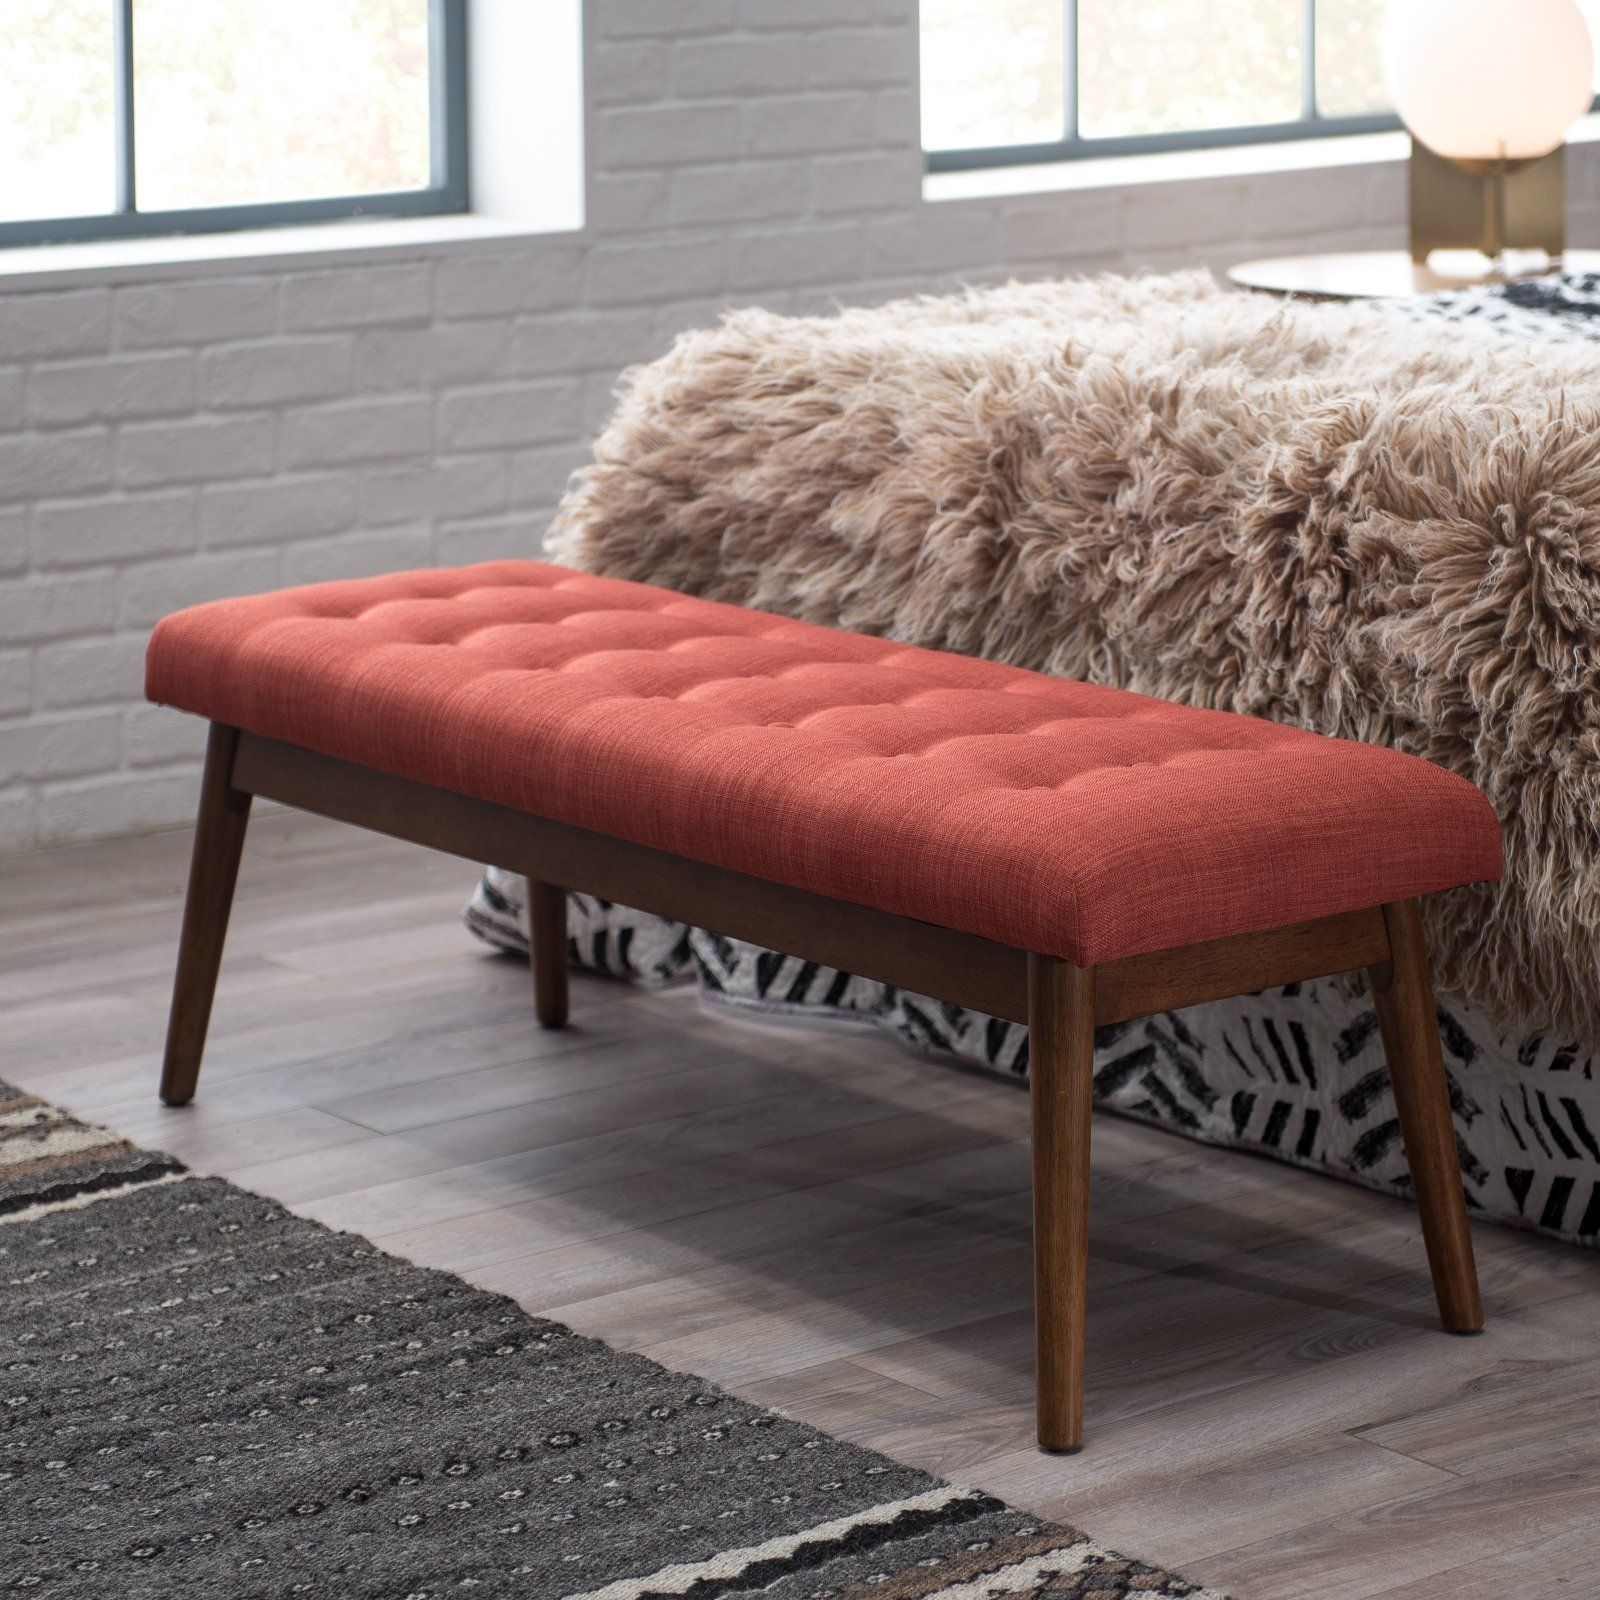 Belham Living Darby Mid Century Modern Upholstered Bench Orange Upholstered Bench Mid Century Modern Coffee Table Upholster